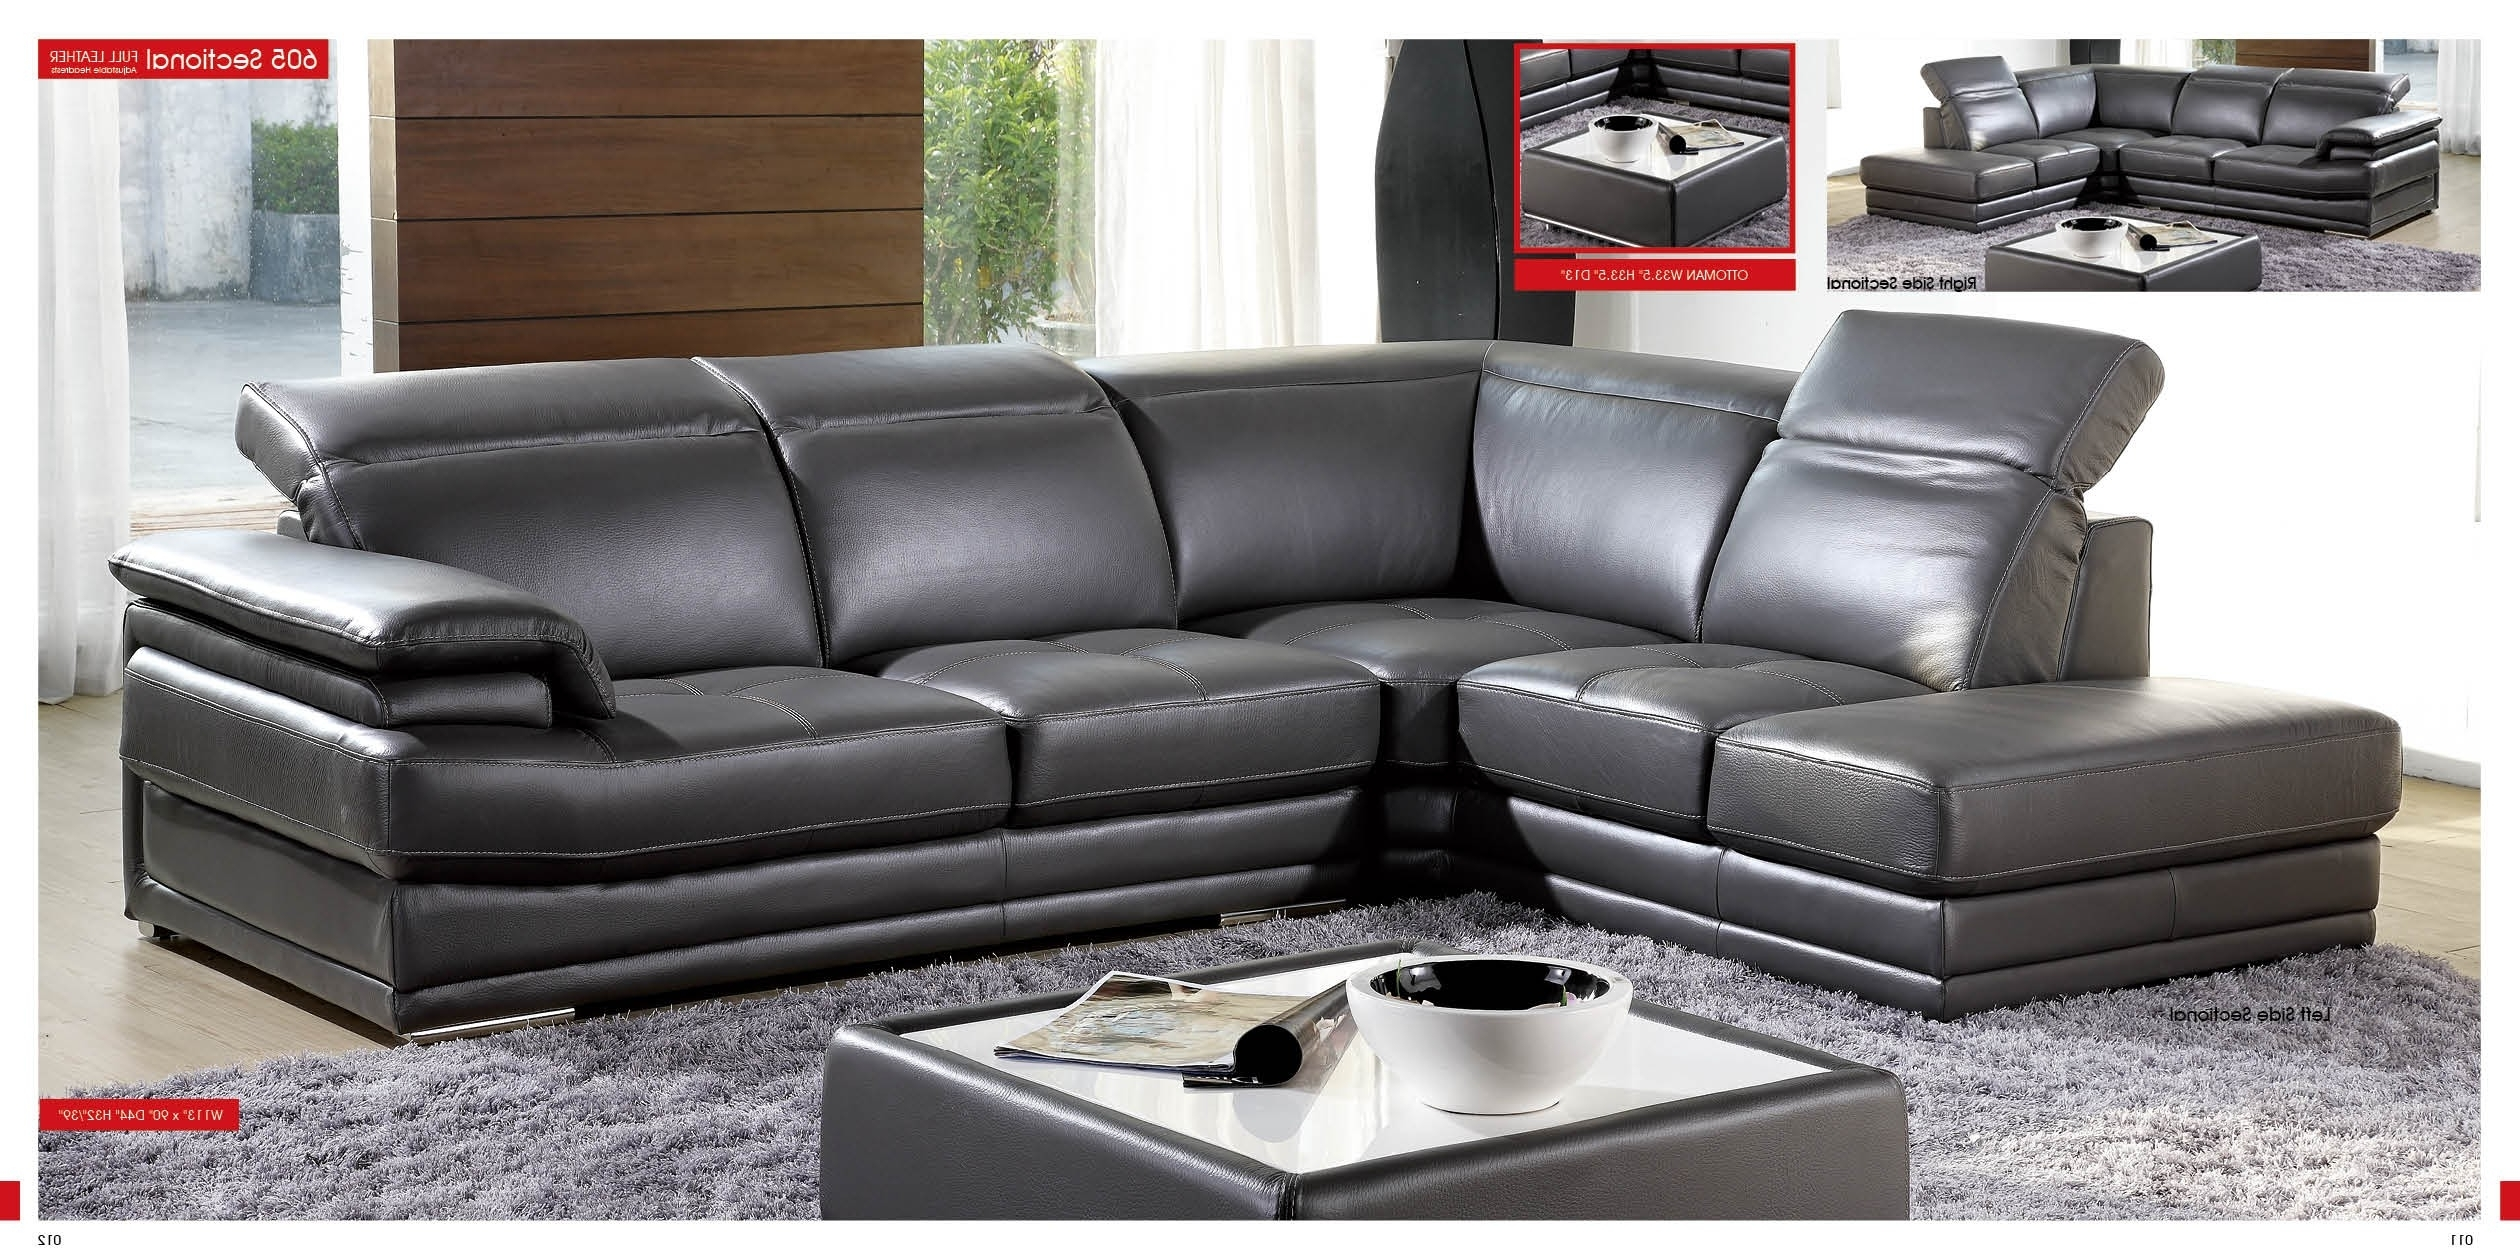 2017 Recliners Chairs & Sofa : Modular Sectional Sofa Leather Couches Inside Leather Modular Sectional Sofas (View 9 of 15)